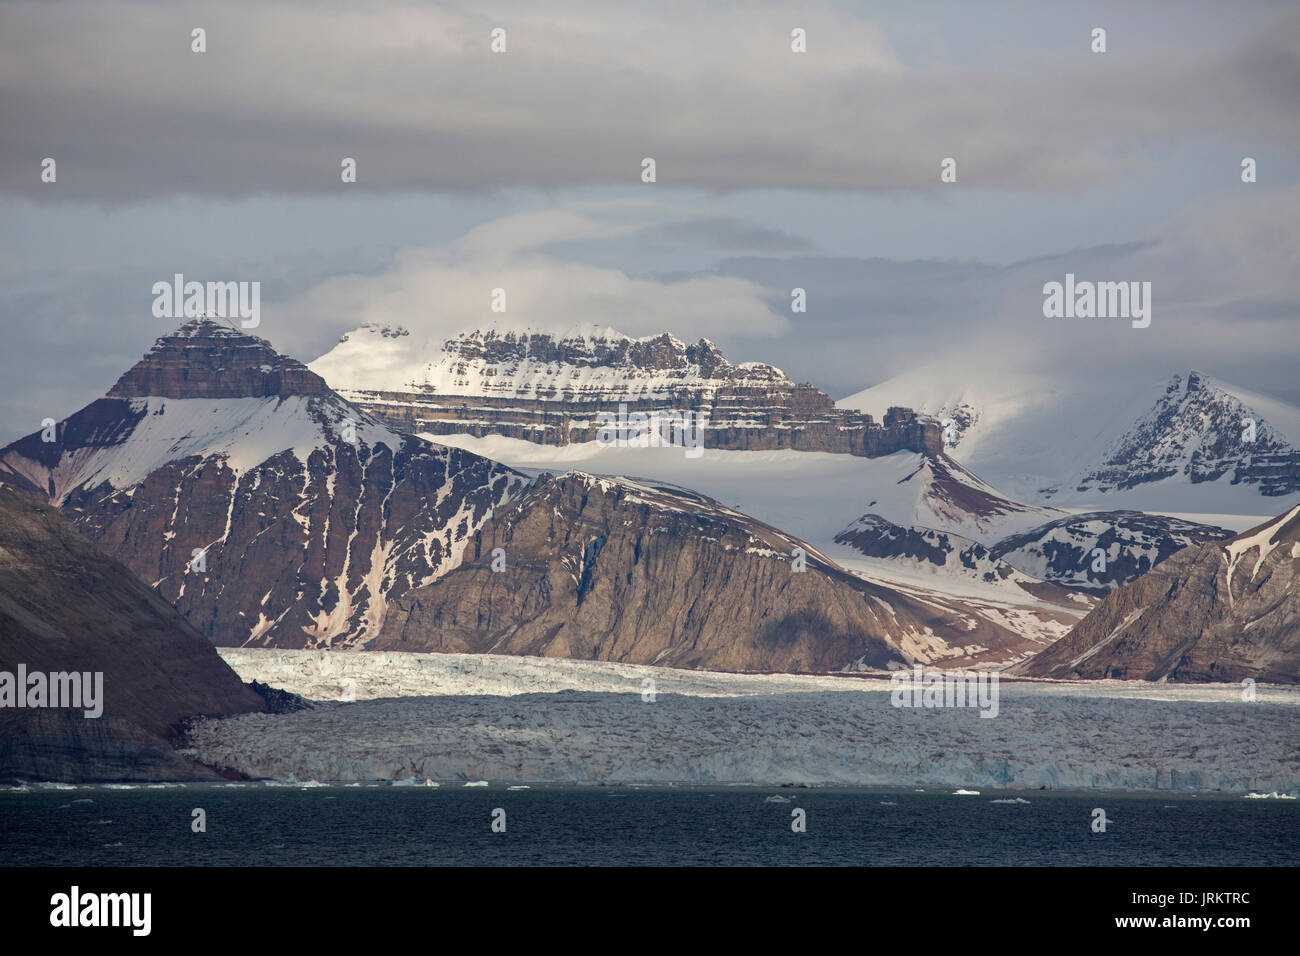 Kronebreen or Crown glacier, Kongsfjord and snow covered, pyramidal shaped mountains. Taken in June, Spitsbergen, Svalbard, Norway - Stock Image